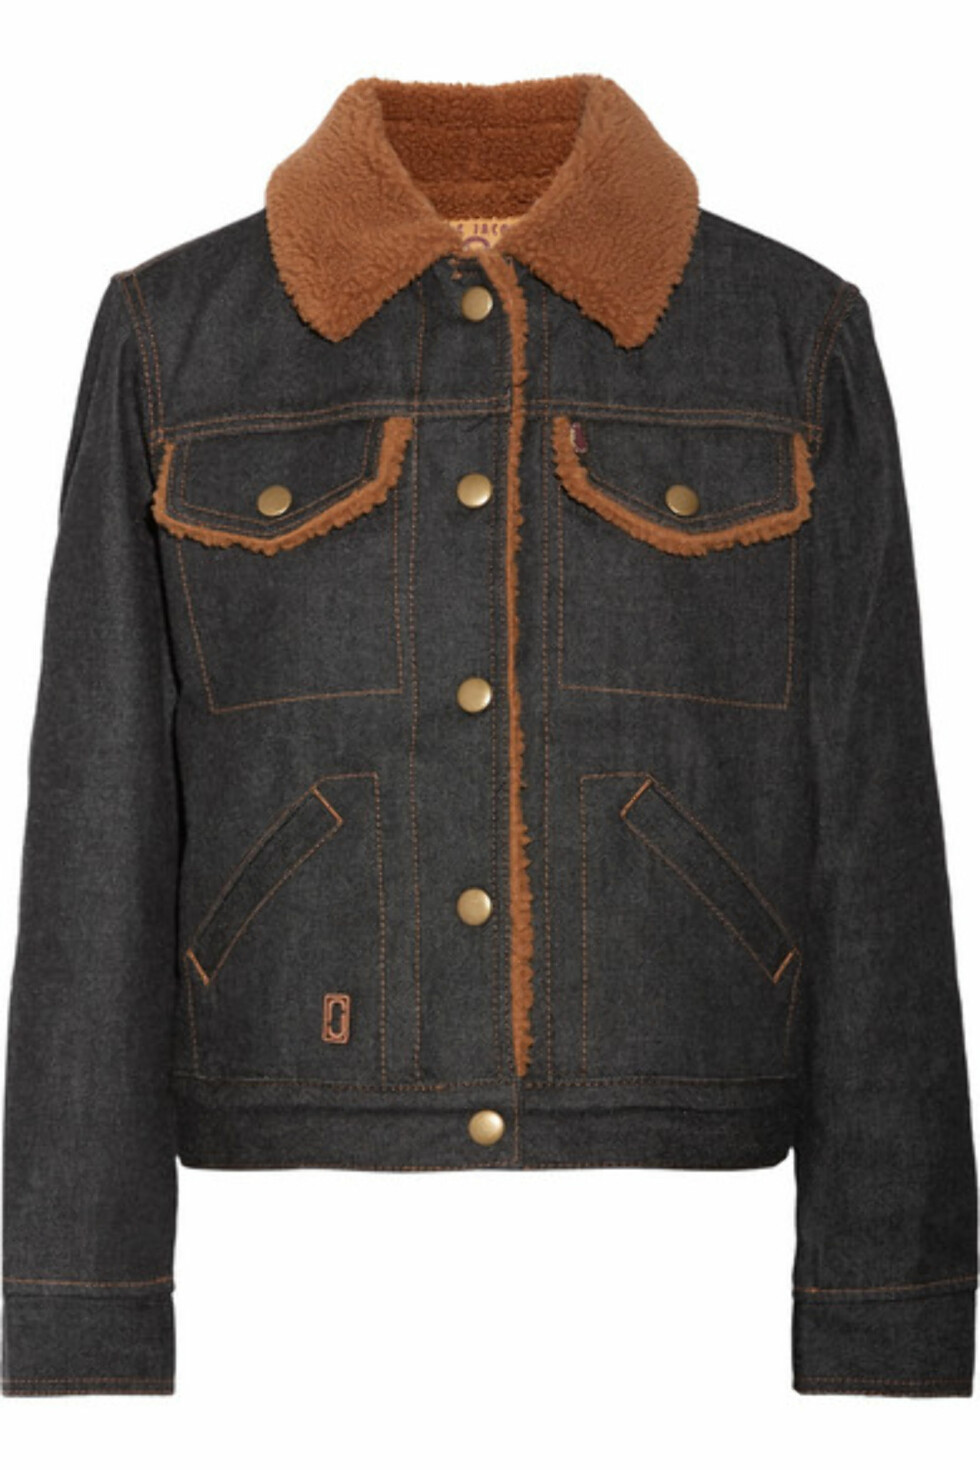 Jakke fra Marc Jacobs |3370,-| https://www.net-a-porter.com/no/en/product/936630/marc_jacobs/faux-shearling-lined-denim-jacket